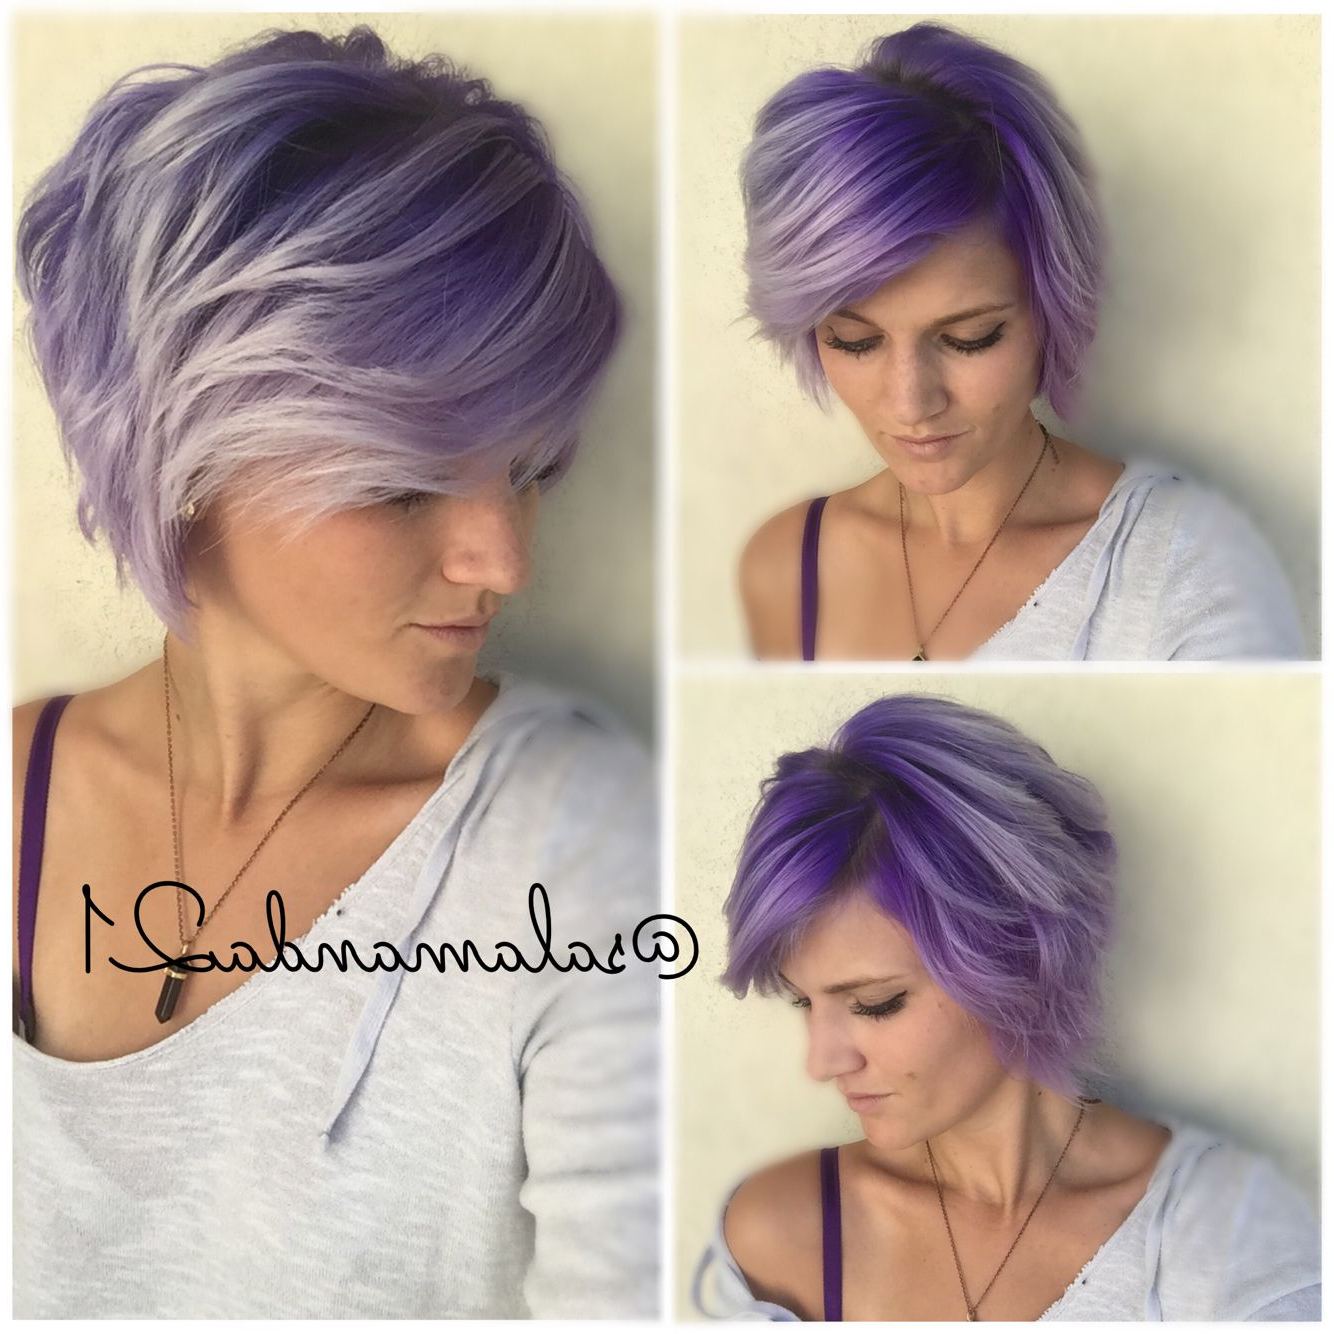 Purple Ombré On Short Hair | My Hair In 2018 | Pinterest | Short For Lavender Hairstyles For Women Over (View 6 of 20)